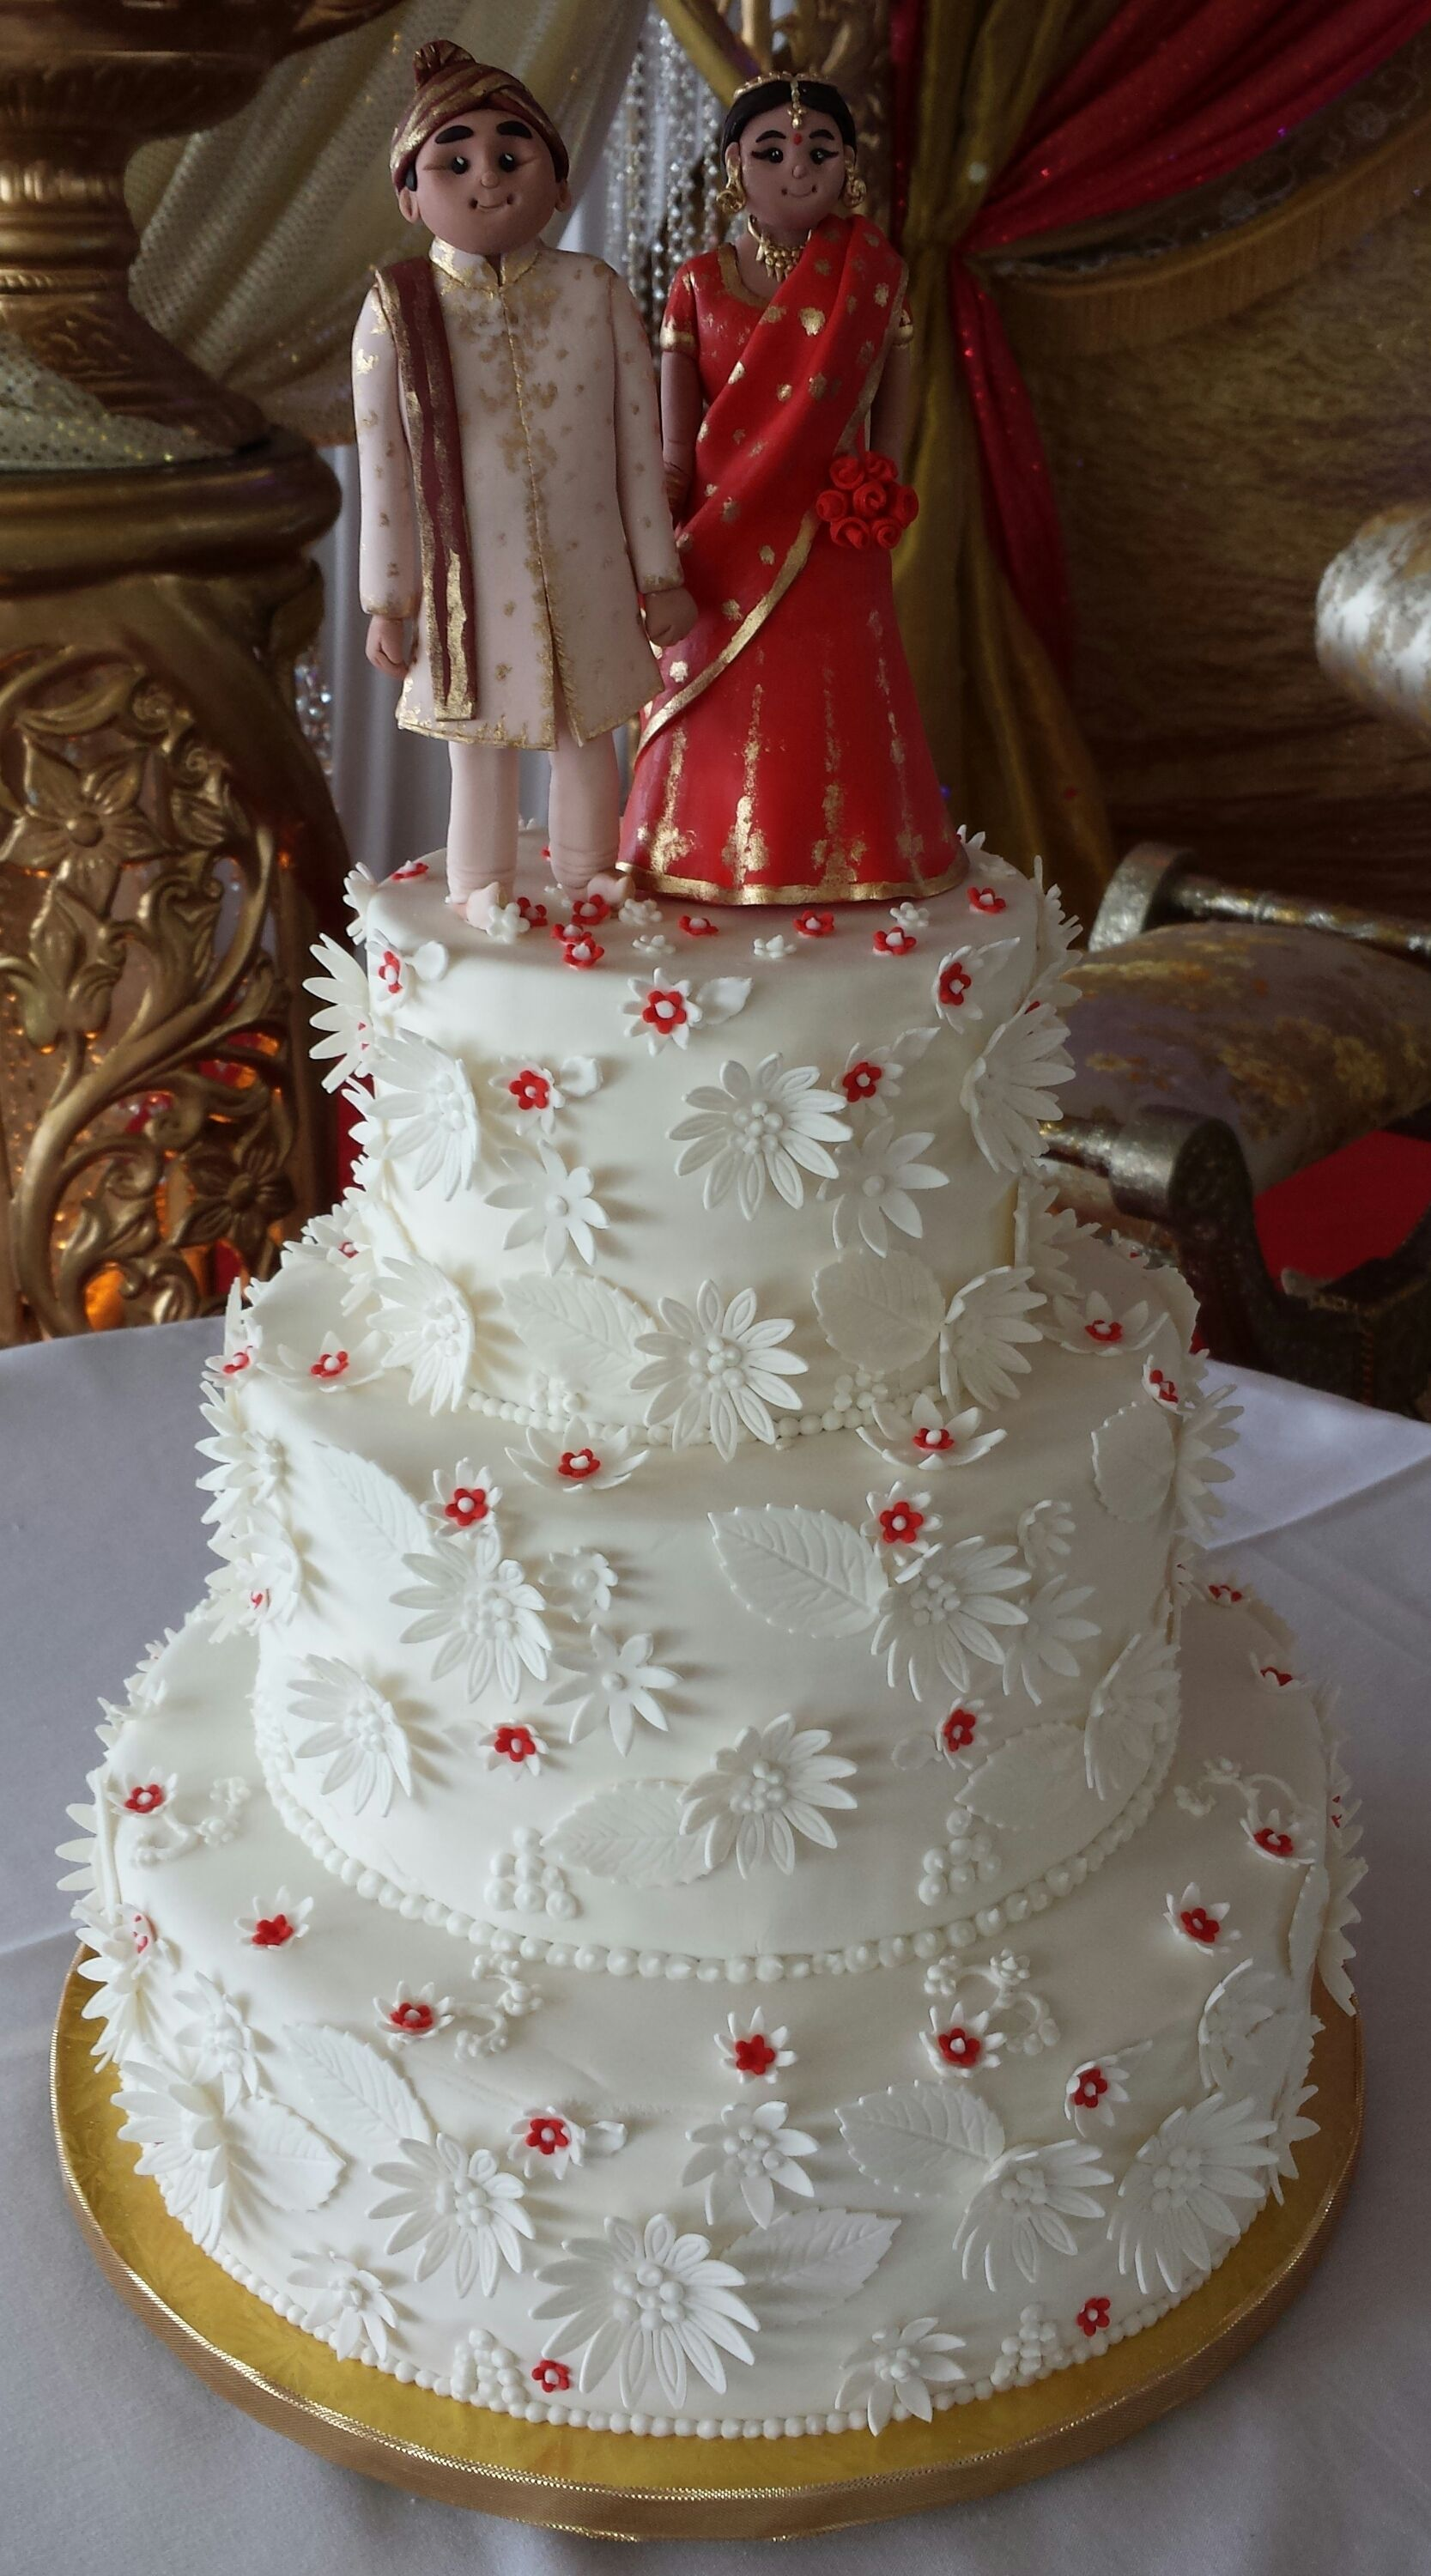 wedding cake for a bangladeshi couple with bride and groom cake topper in traditional wedding costume